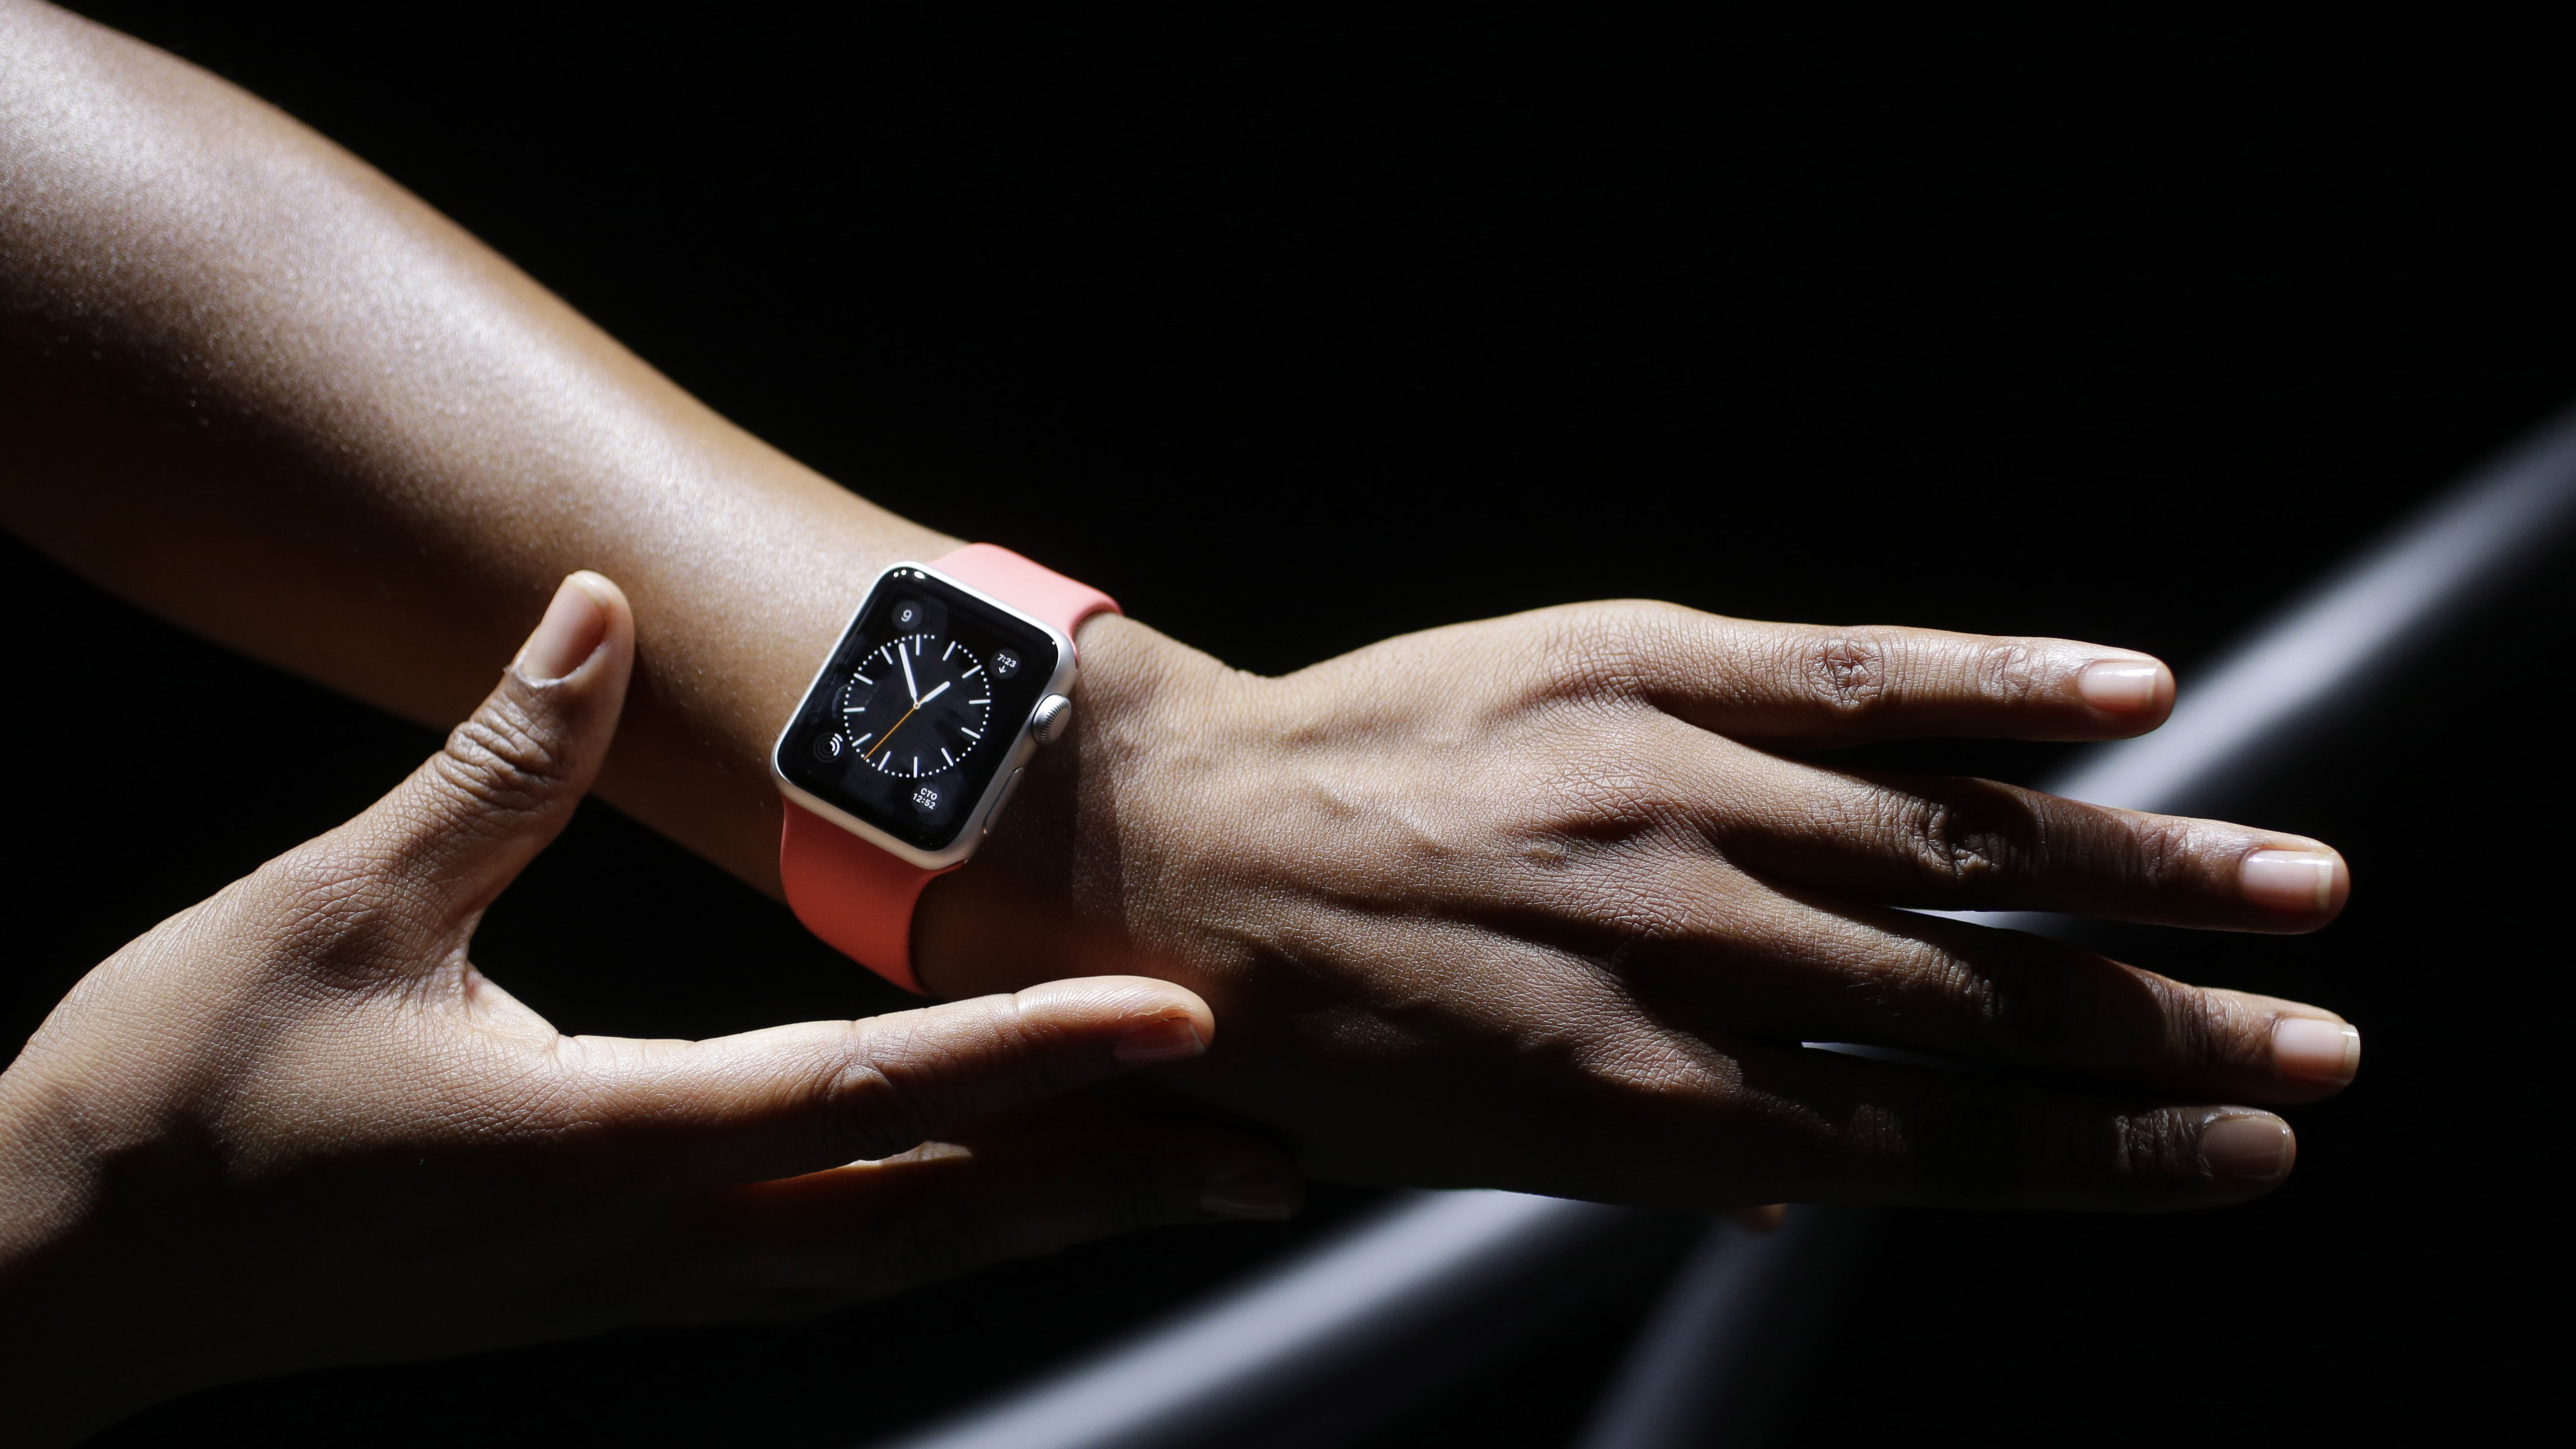 The new Apple Watch is shown by a model on a treadmill during a new product release on Tuesday, Sept. 9, 2014, in Cupertino, Calif. (AP Photo/Marcio Jose Sanchez)